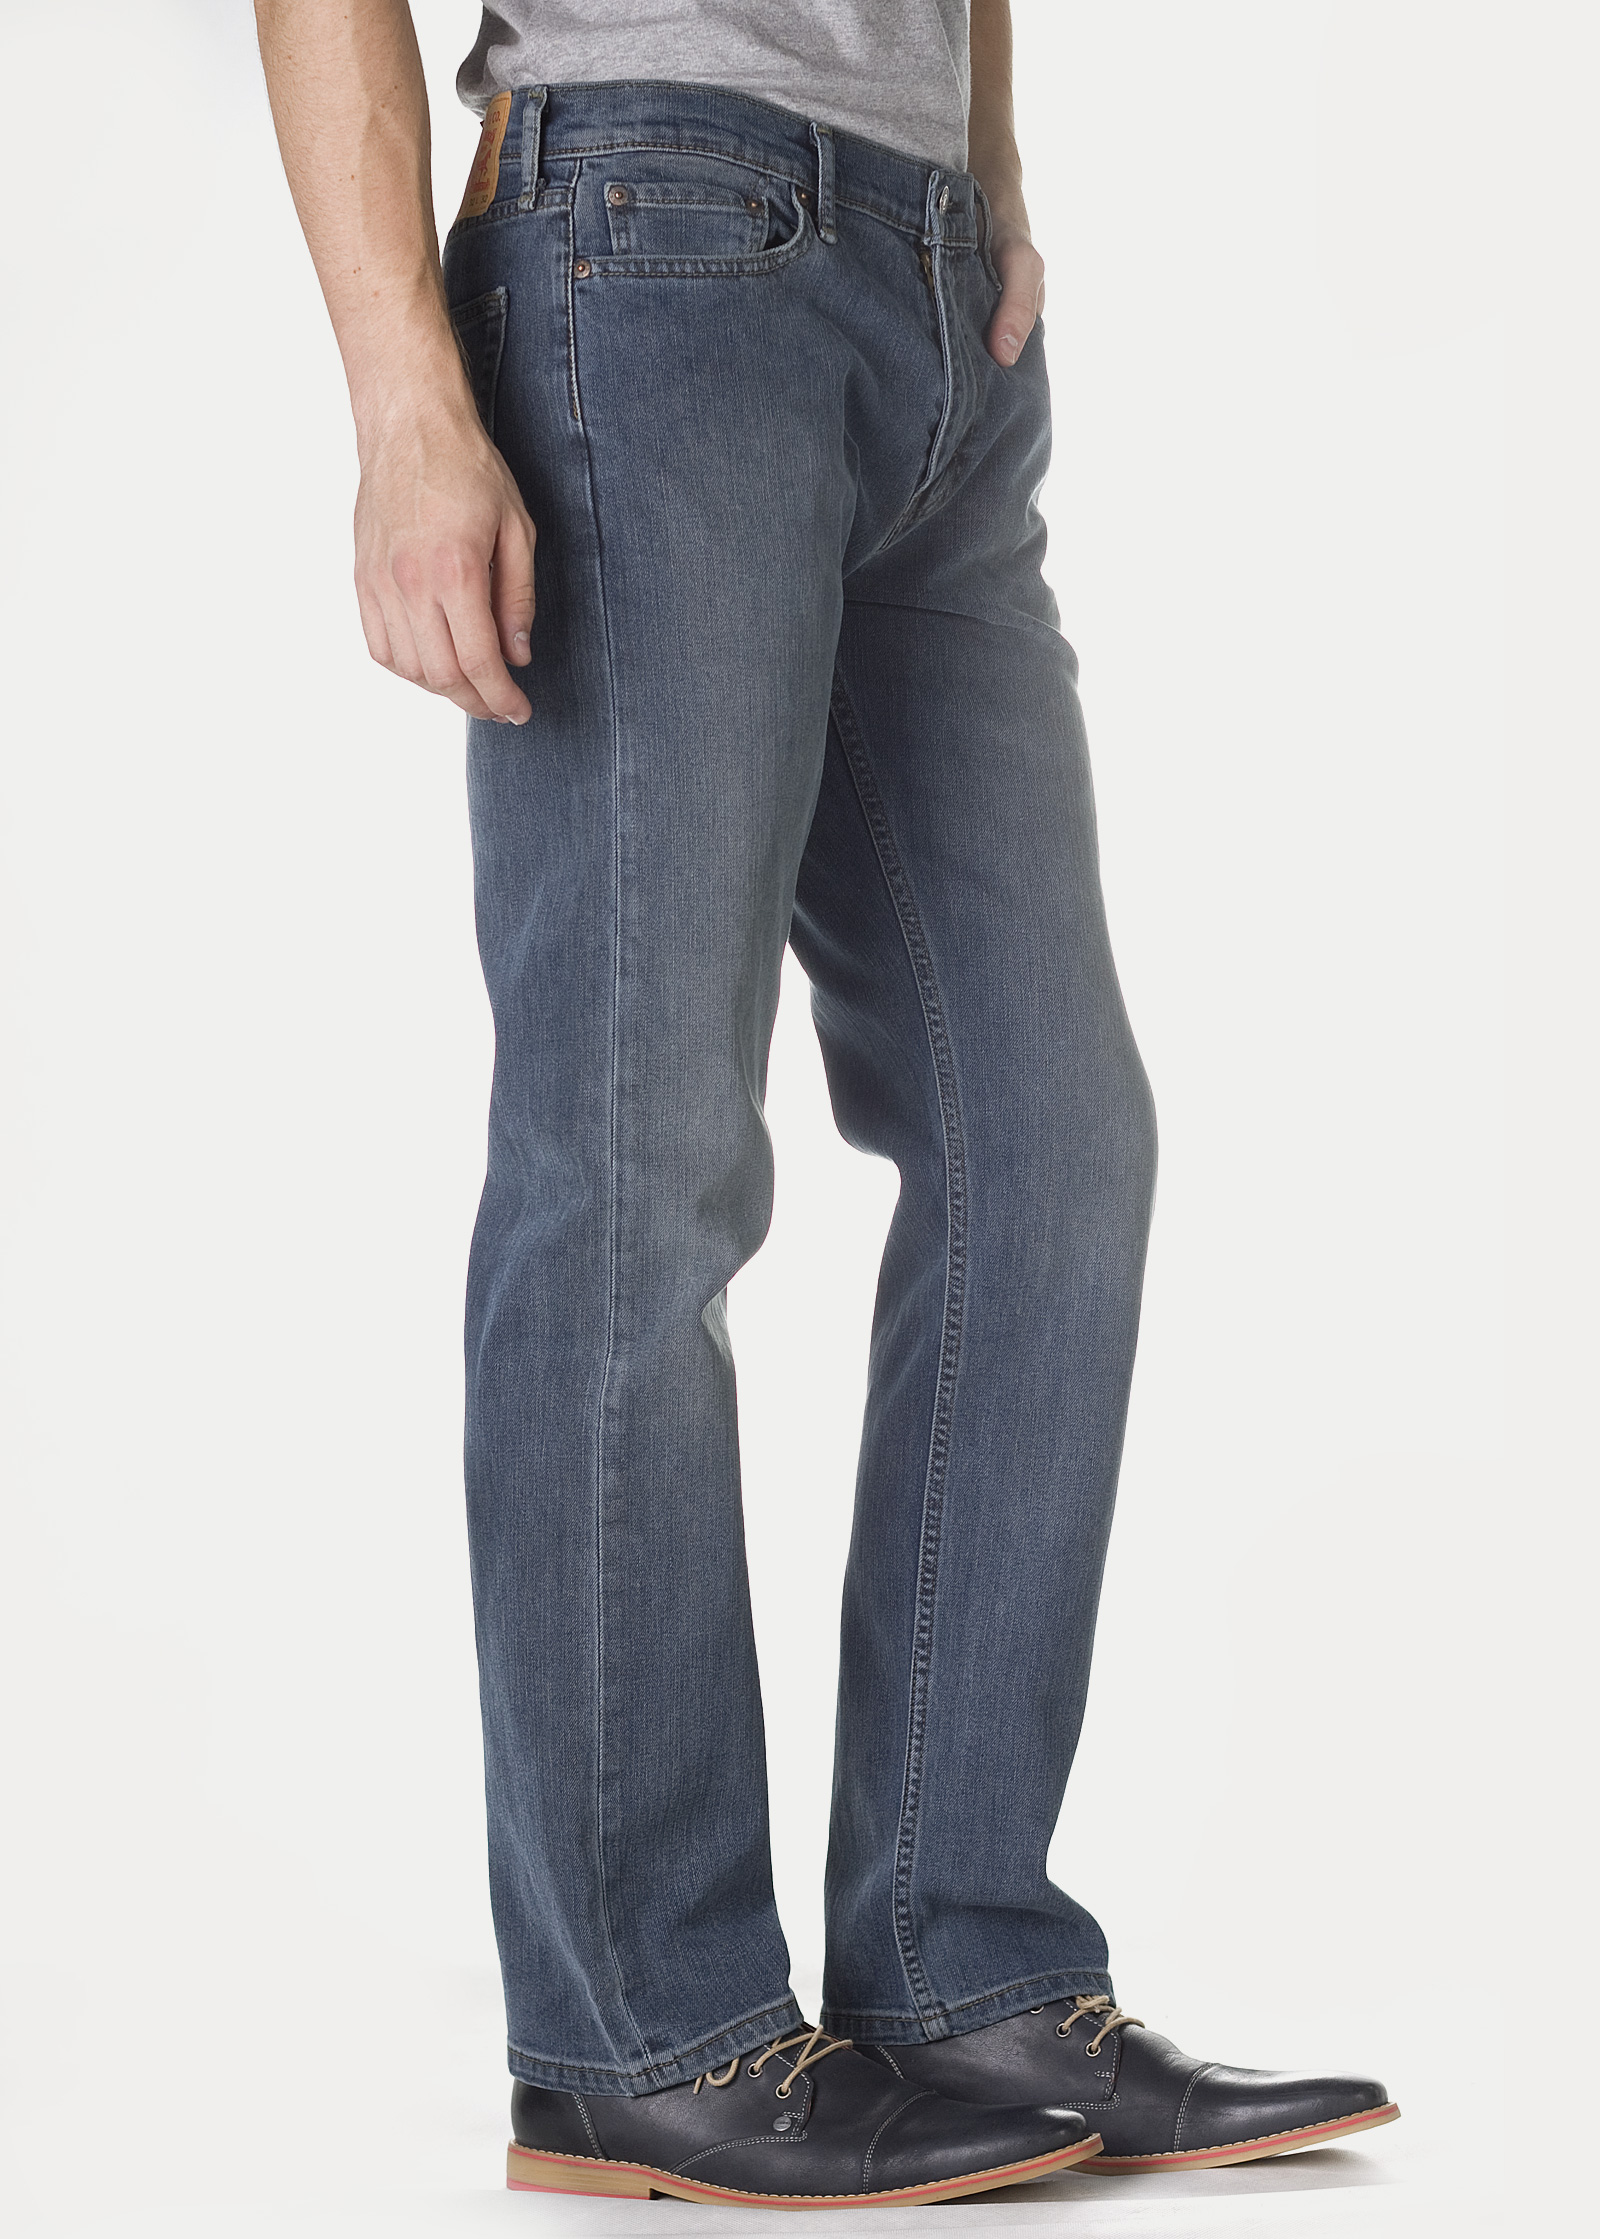 jeans levis 504 straight